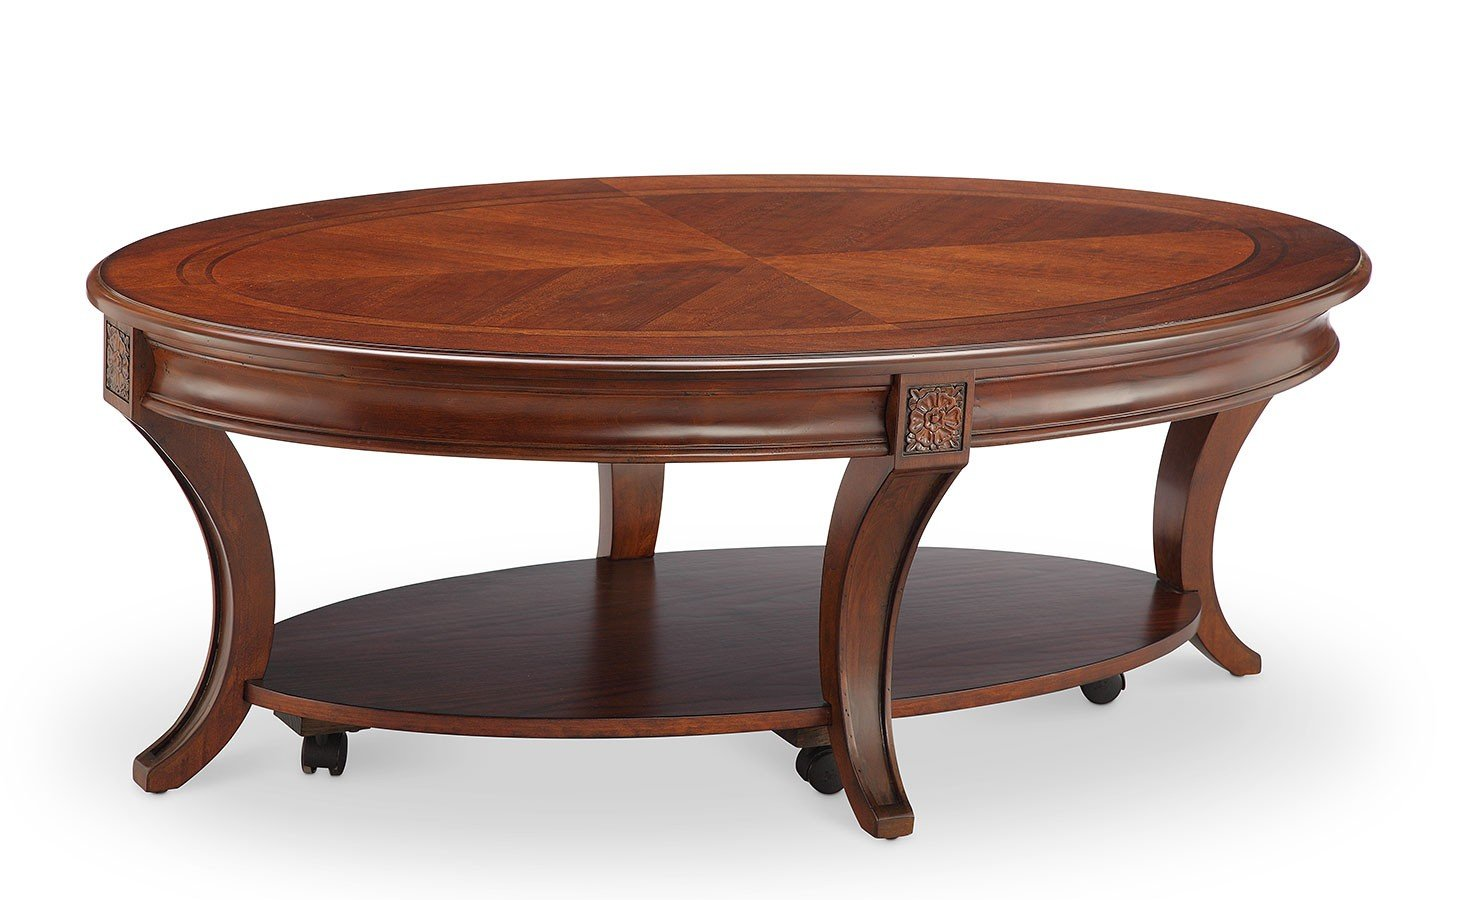 winslet oval cocktail table w casters coffee and cocktail tables occasional and accent. Black Bedroom Furniture Sets. Home Design Ideas